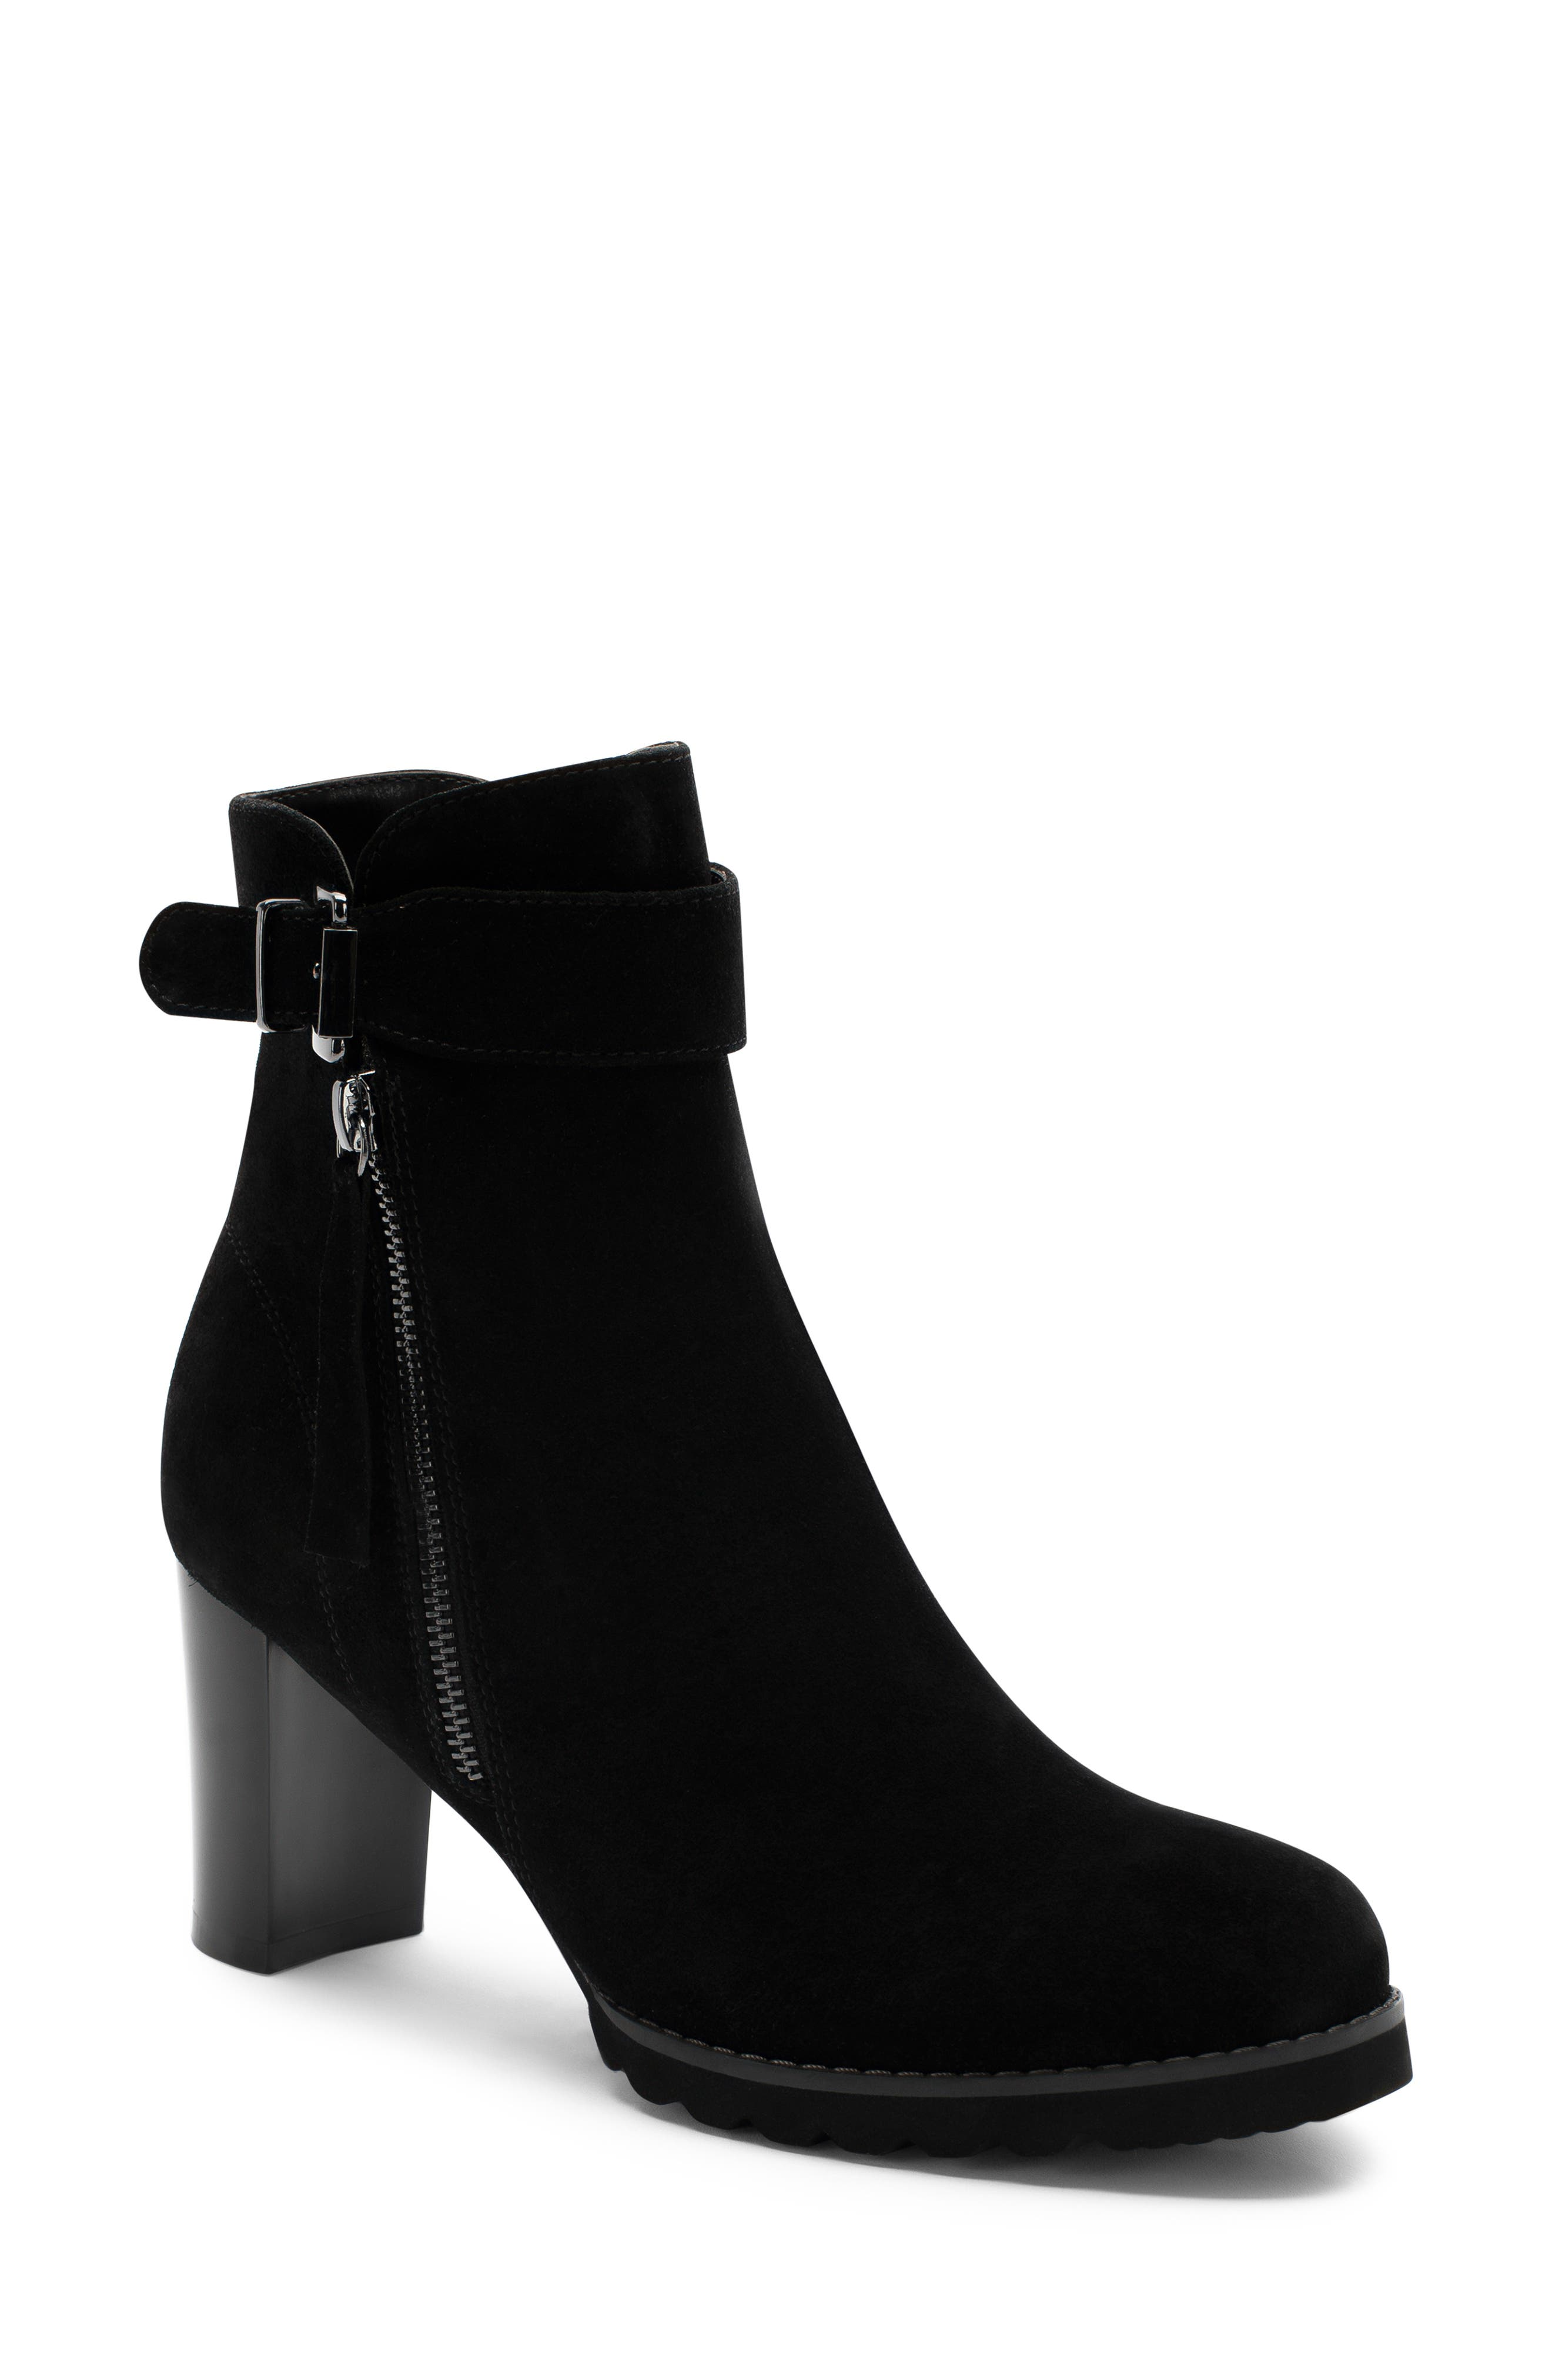 Anic Waterproof Ankle Boot,                             Main thumbnail 1, color,                             BLACK SUEDE